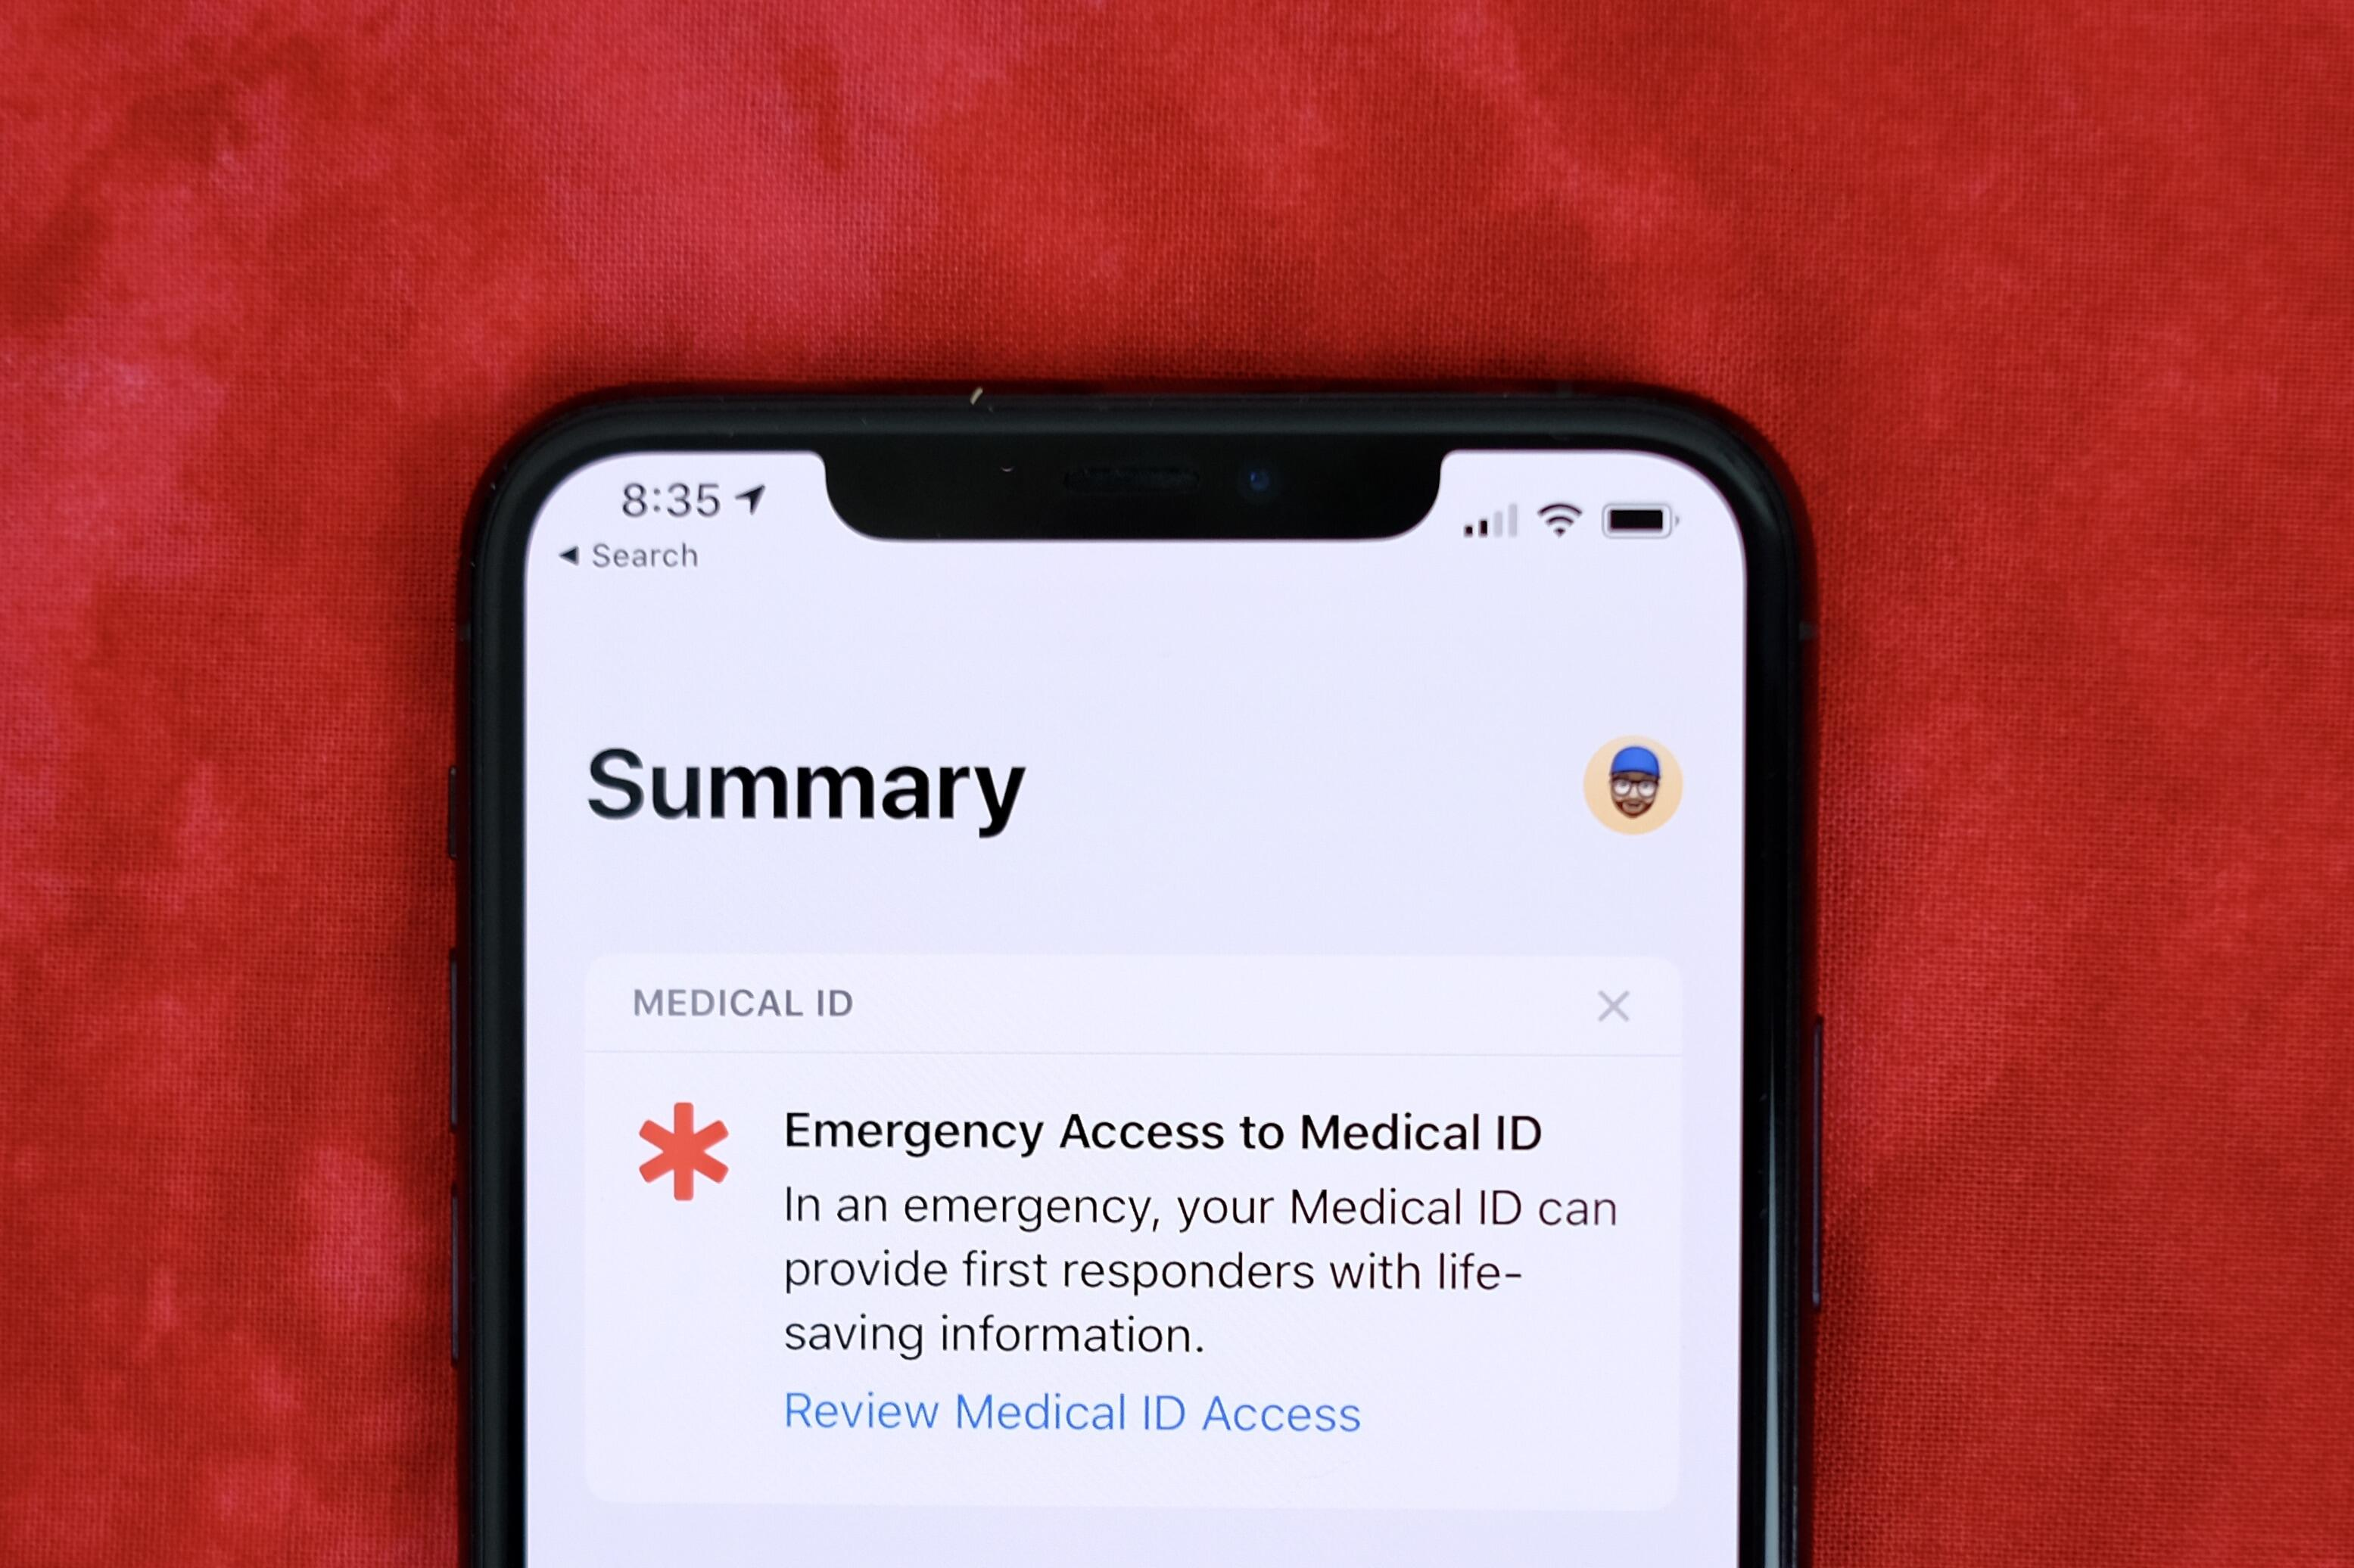 turn-on-medical-id-access